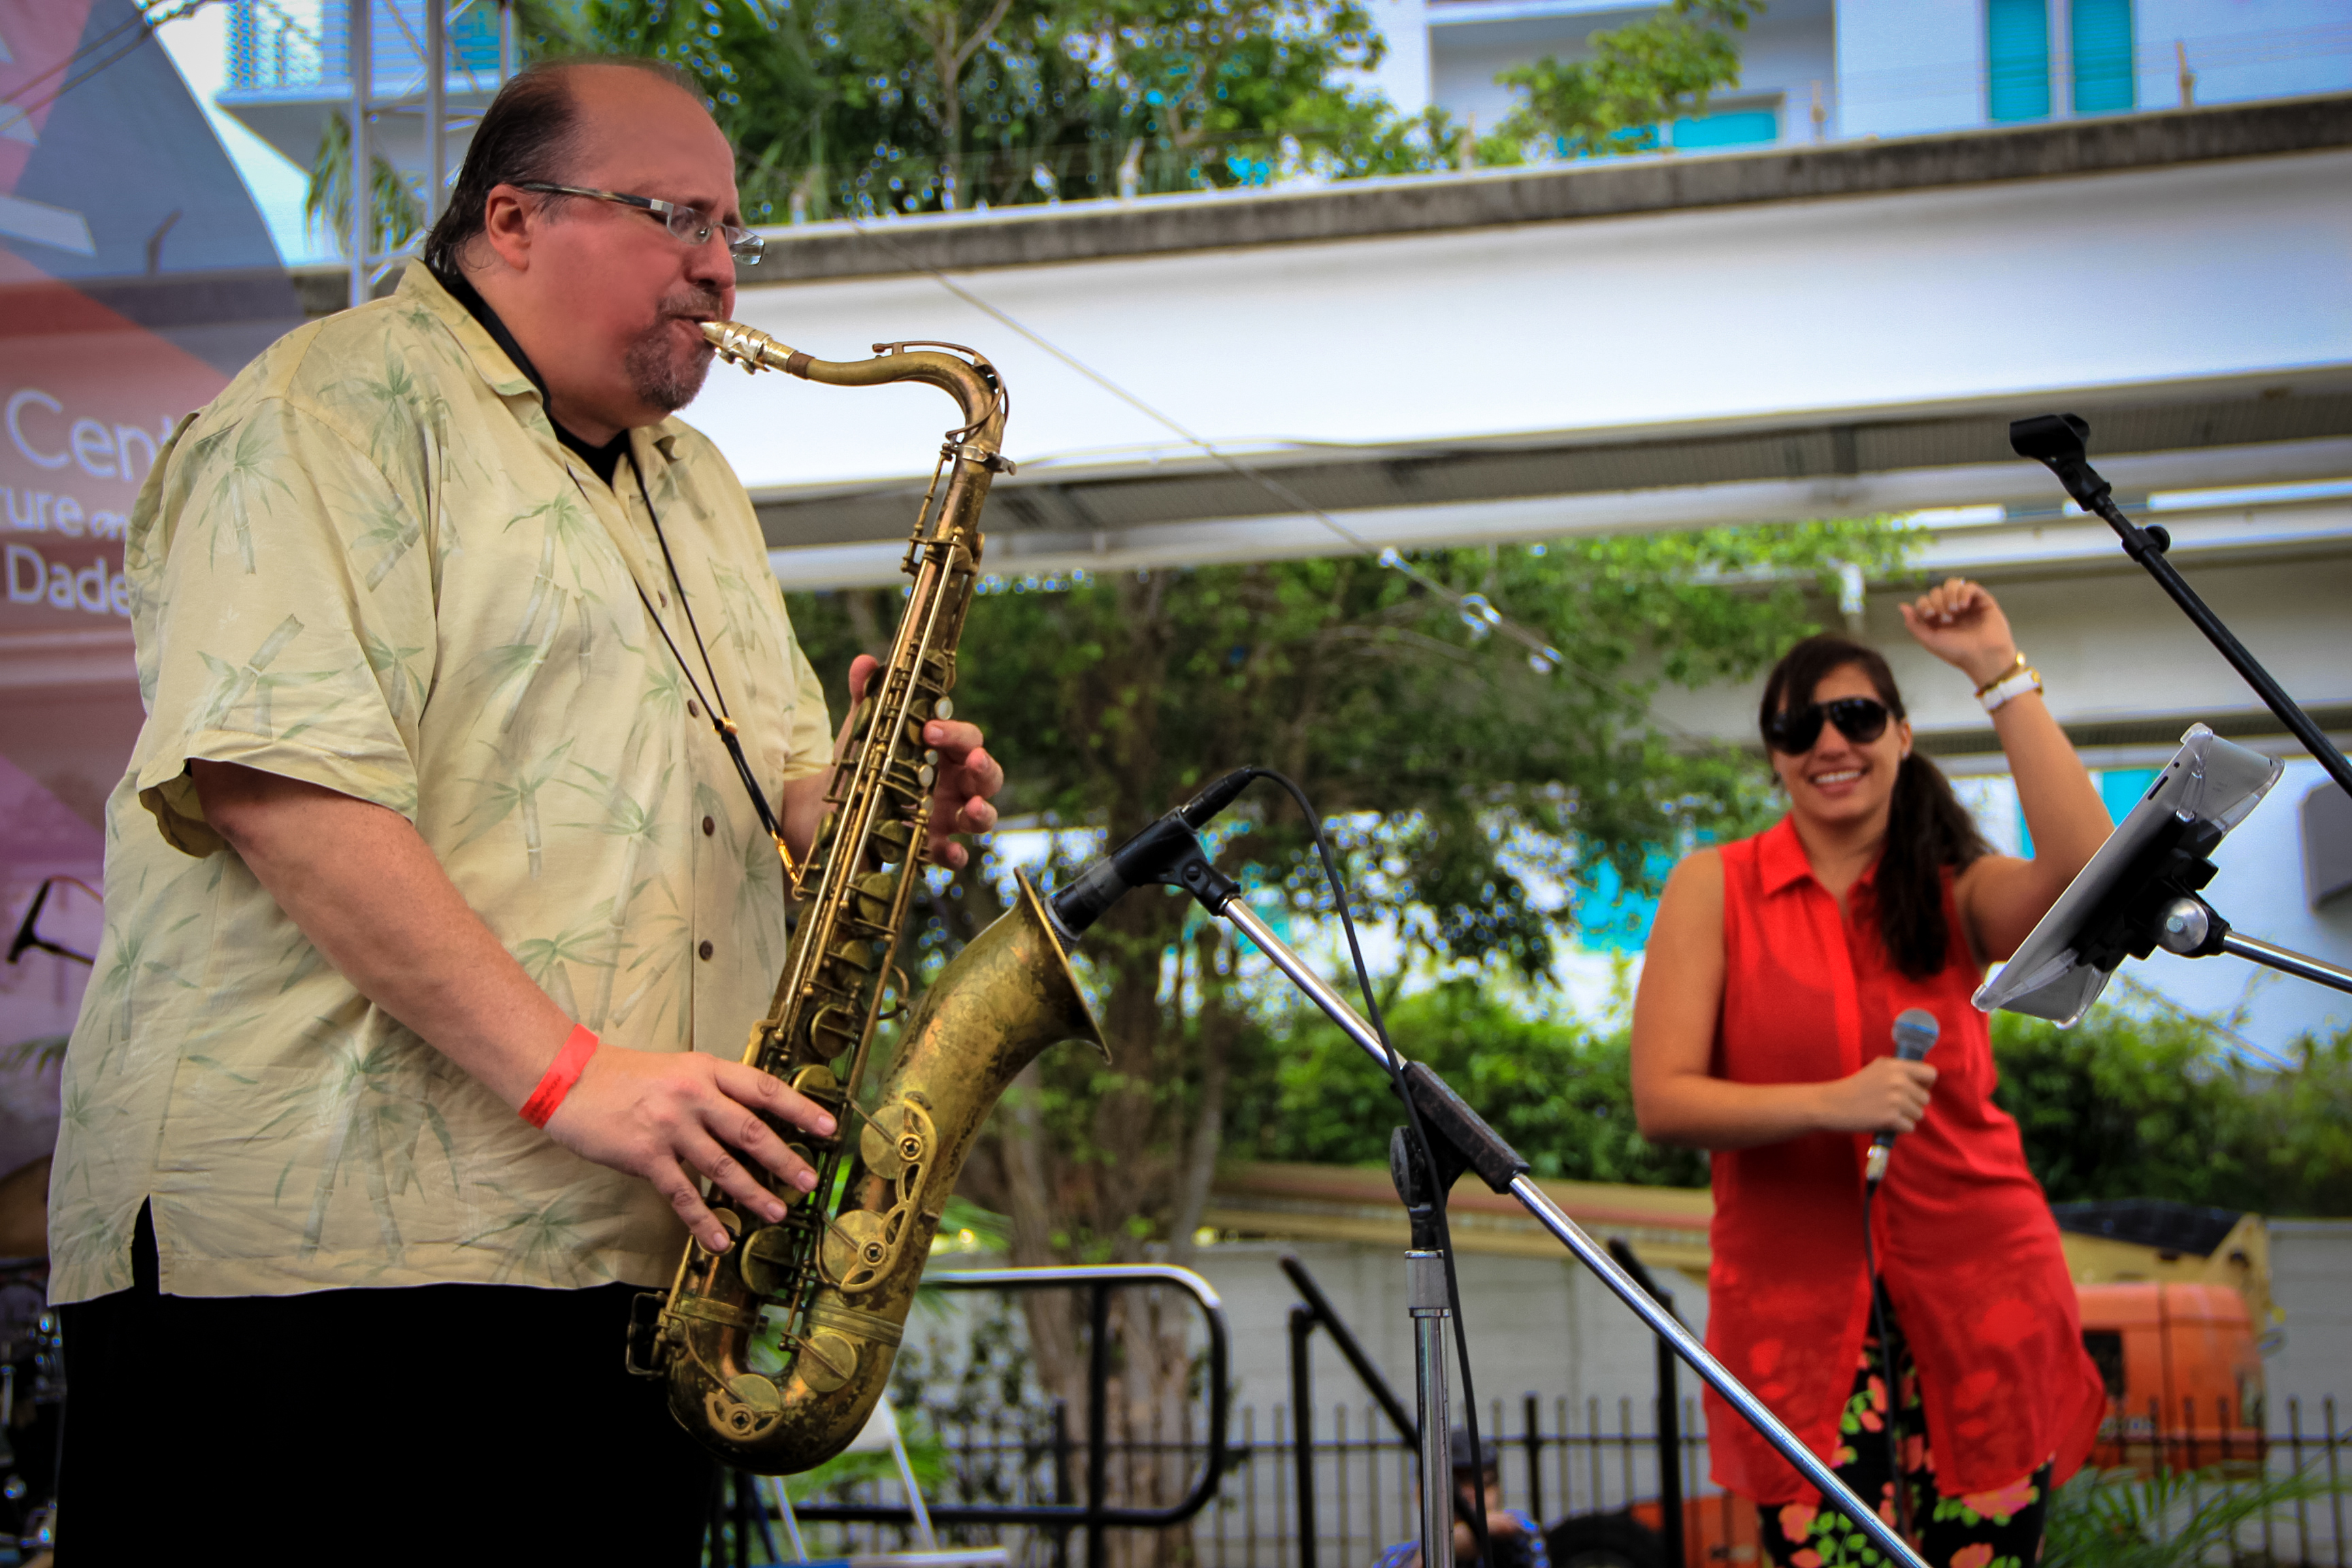 music professor incites twitter mob controversial obama henry pasos capodiferro reporter file photo twitter scandal saxophonist and miami dade college professor eduardo calle caused discord on twitter after a